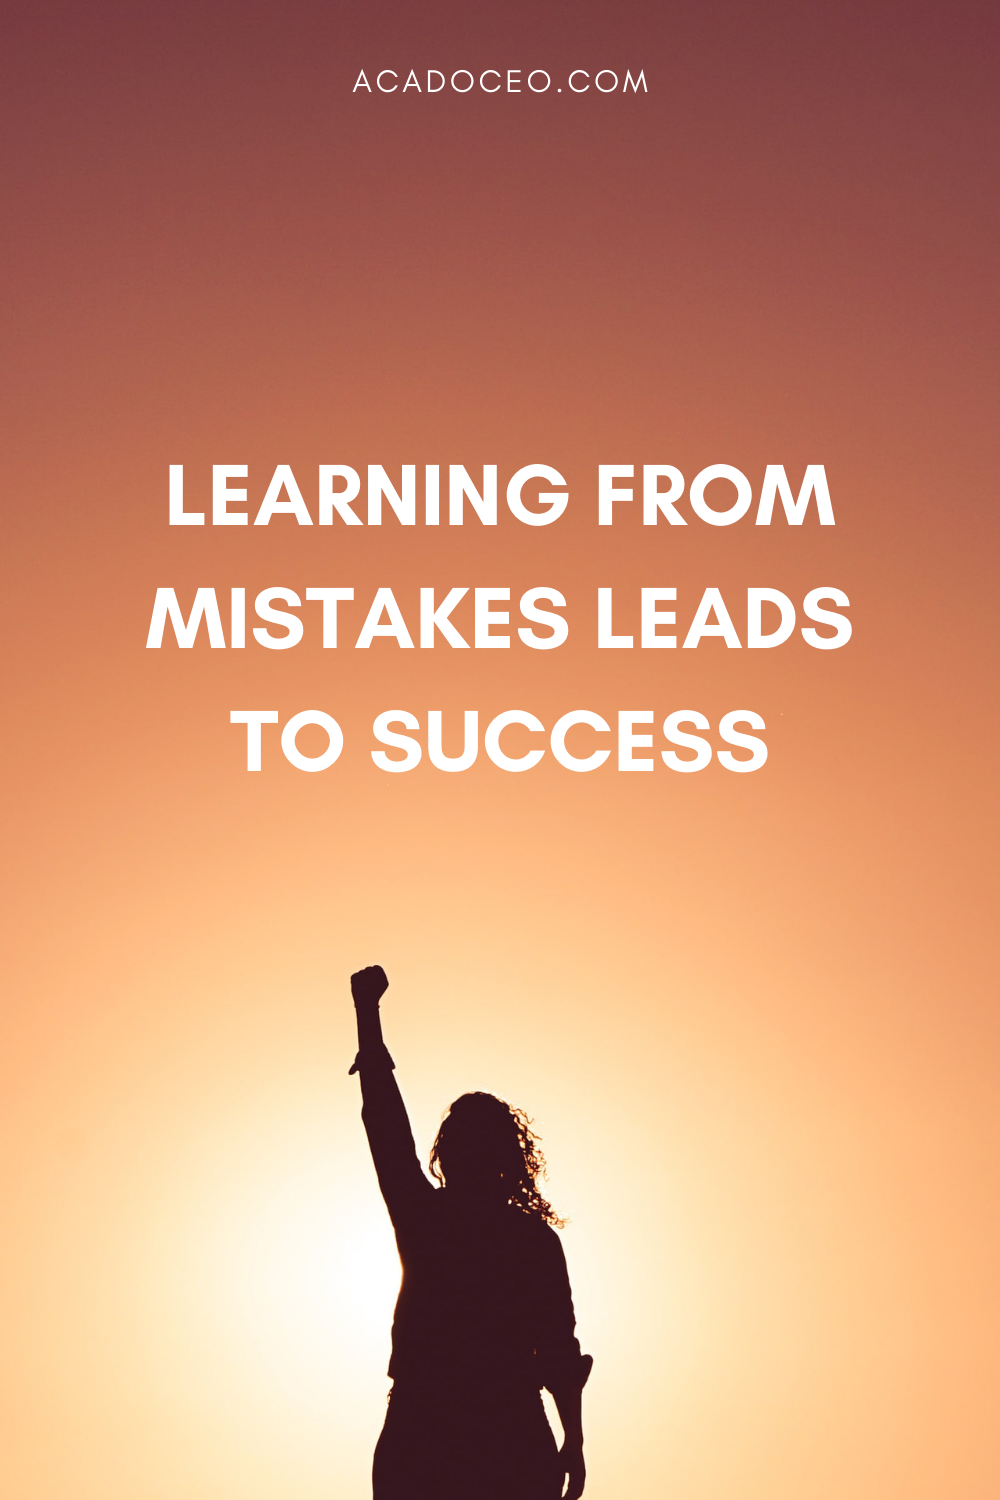 LEARNING FROM MISTAKES LEADS TO SUCCESS